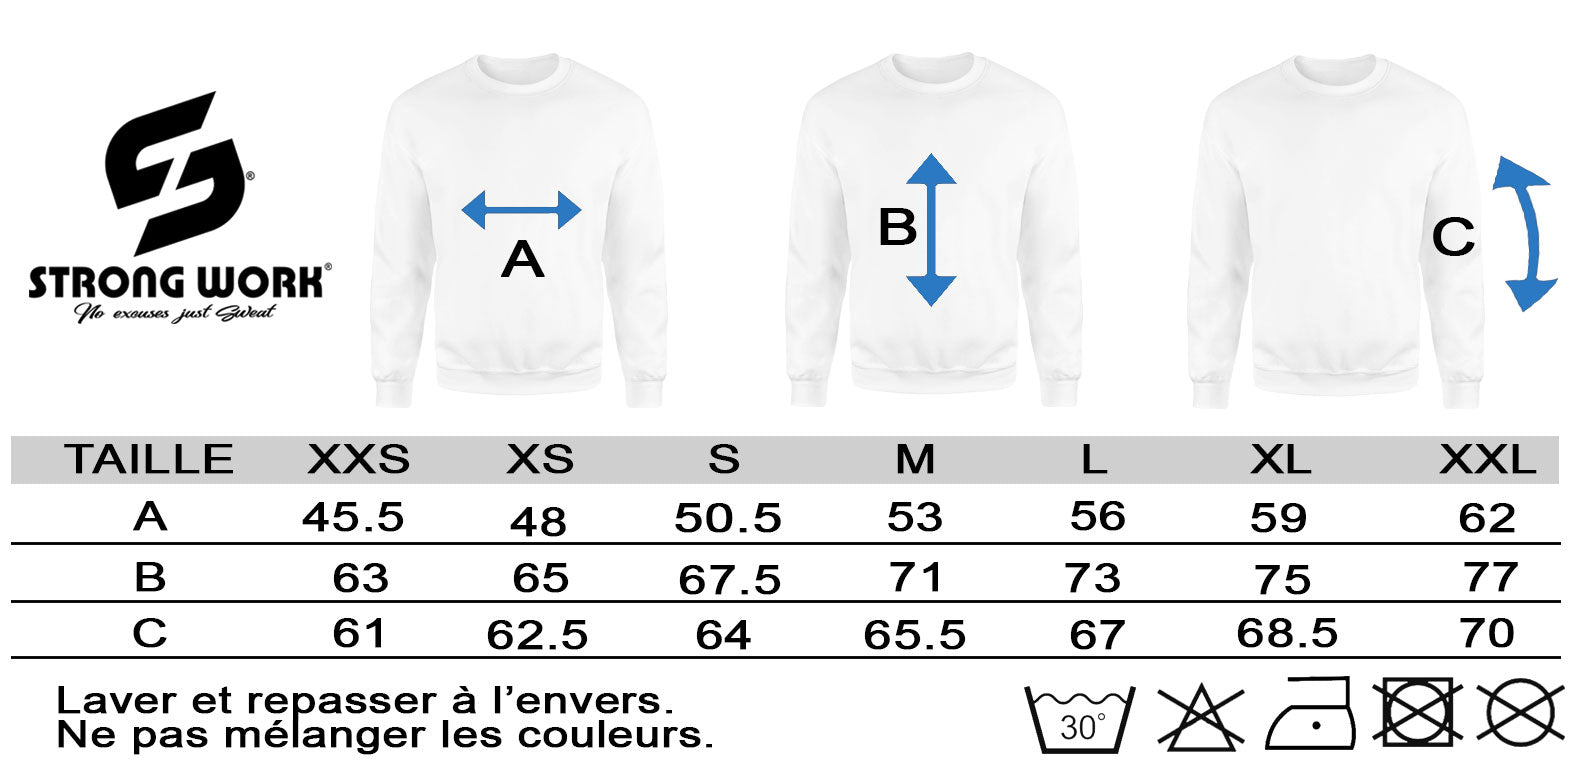 GUIDE DES TAILLES STRONG WORK - SWEAT-SHIRT EN COTON BIO I DON'T HAVE TIME FOR REGRETS JUST FOR WORKOUT POUR HOMME